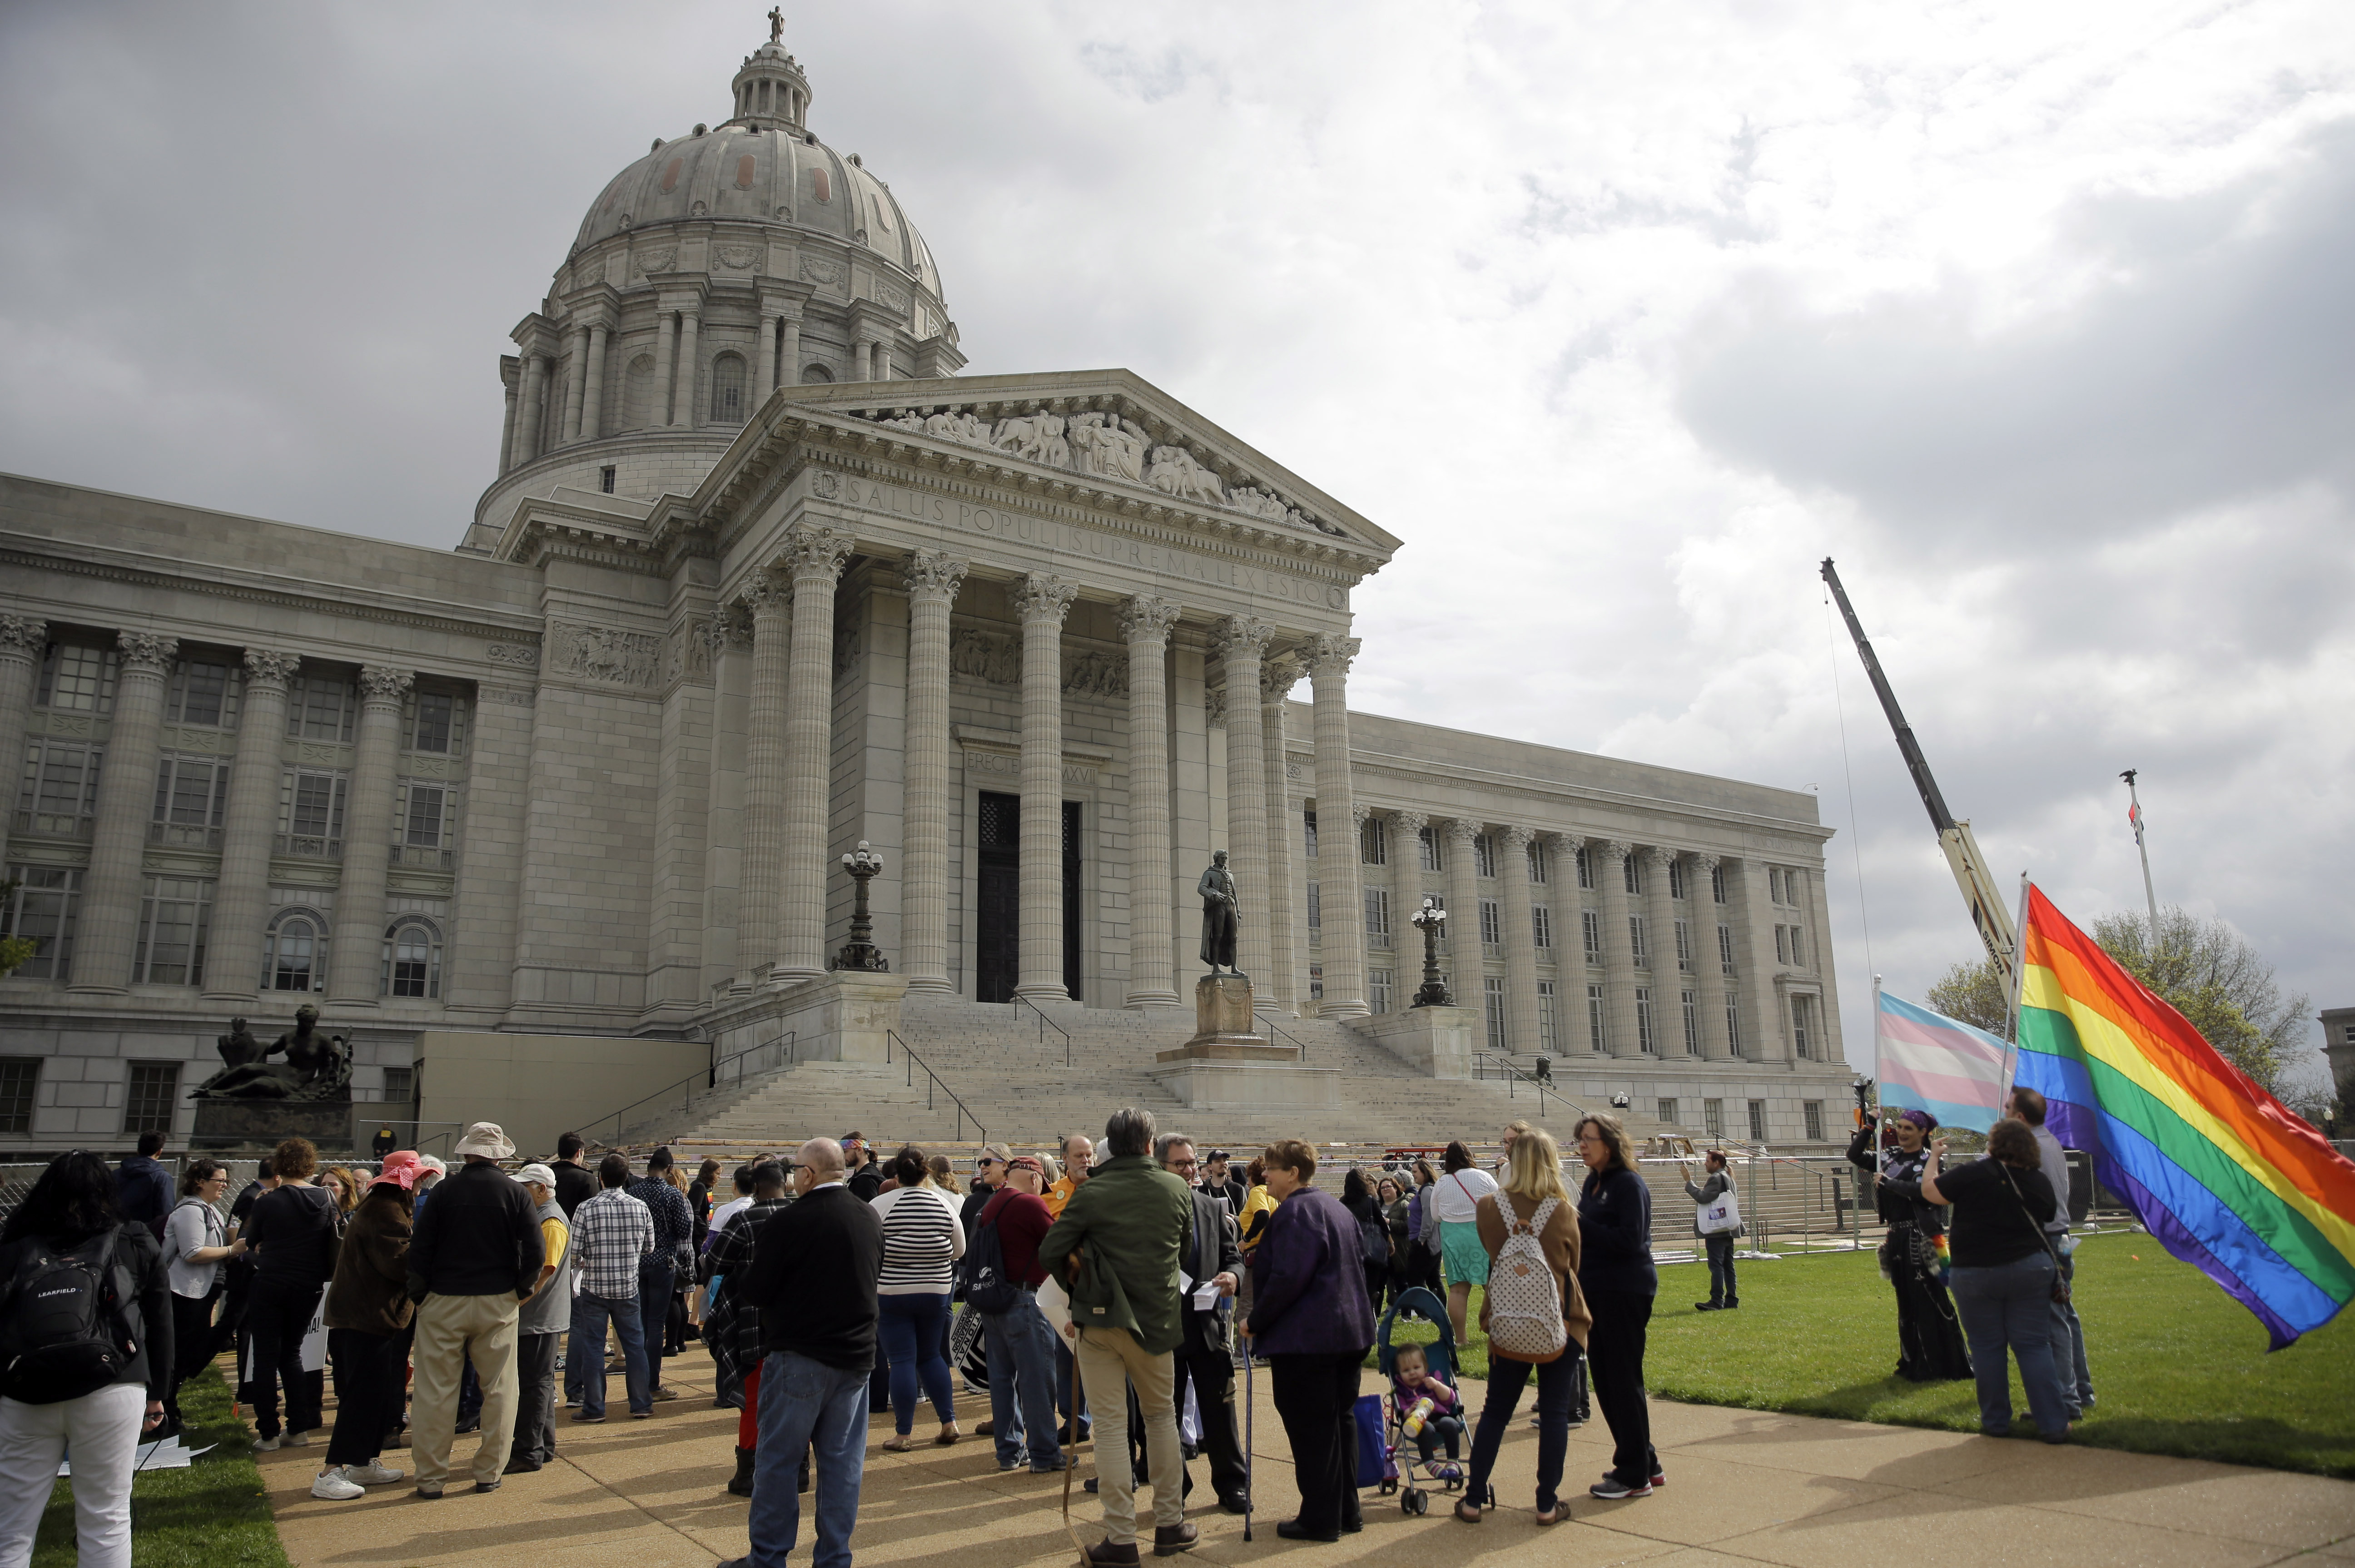 Missouri 'Religious Freedom' Bill Defeated In House Committee Vote